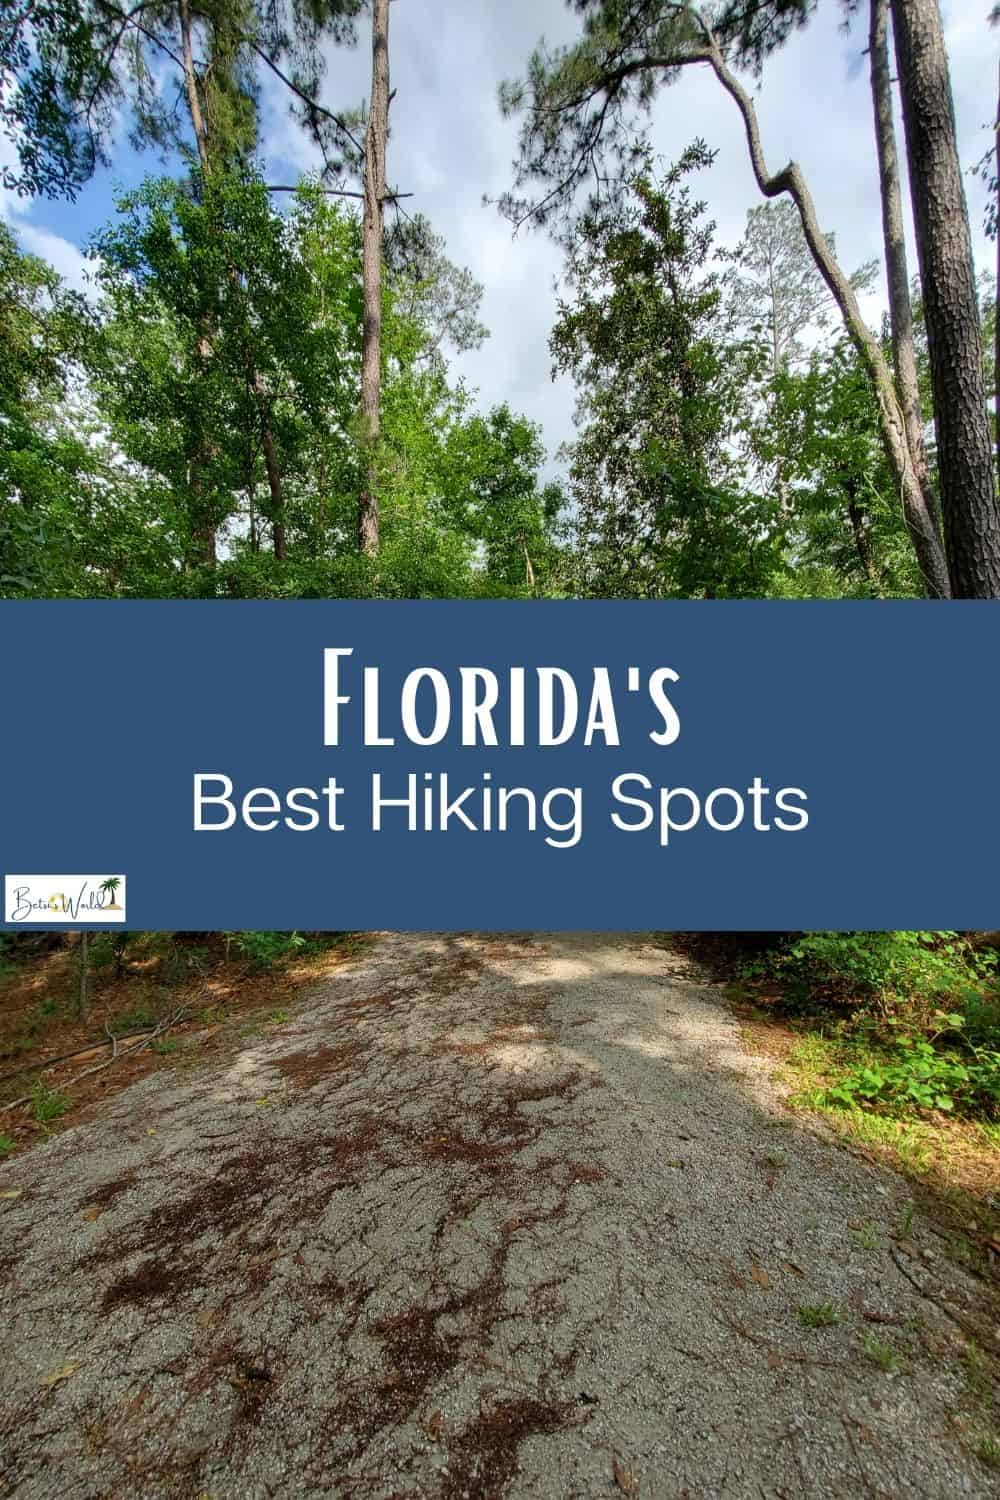 Wondering where to find good hiking trails in Florida? We've got you covered! For the best hiking in Florida experience, we've rounded up our top 5 favorite parks from around the state. #hiking #florida #floridatravel